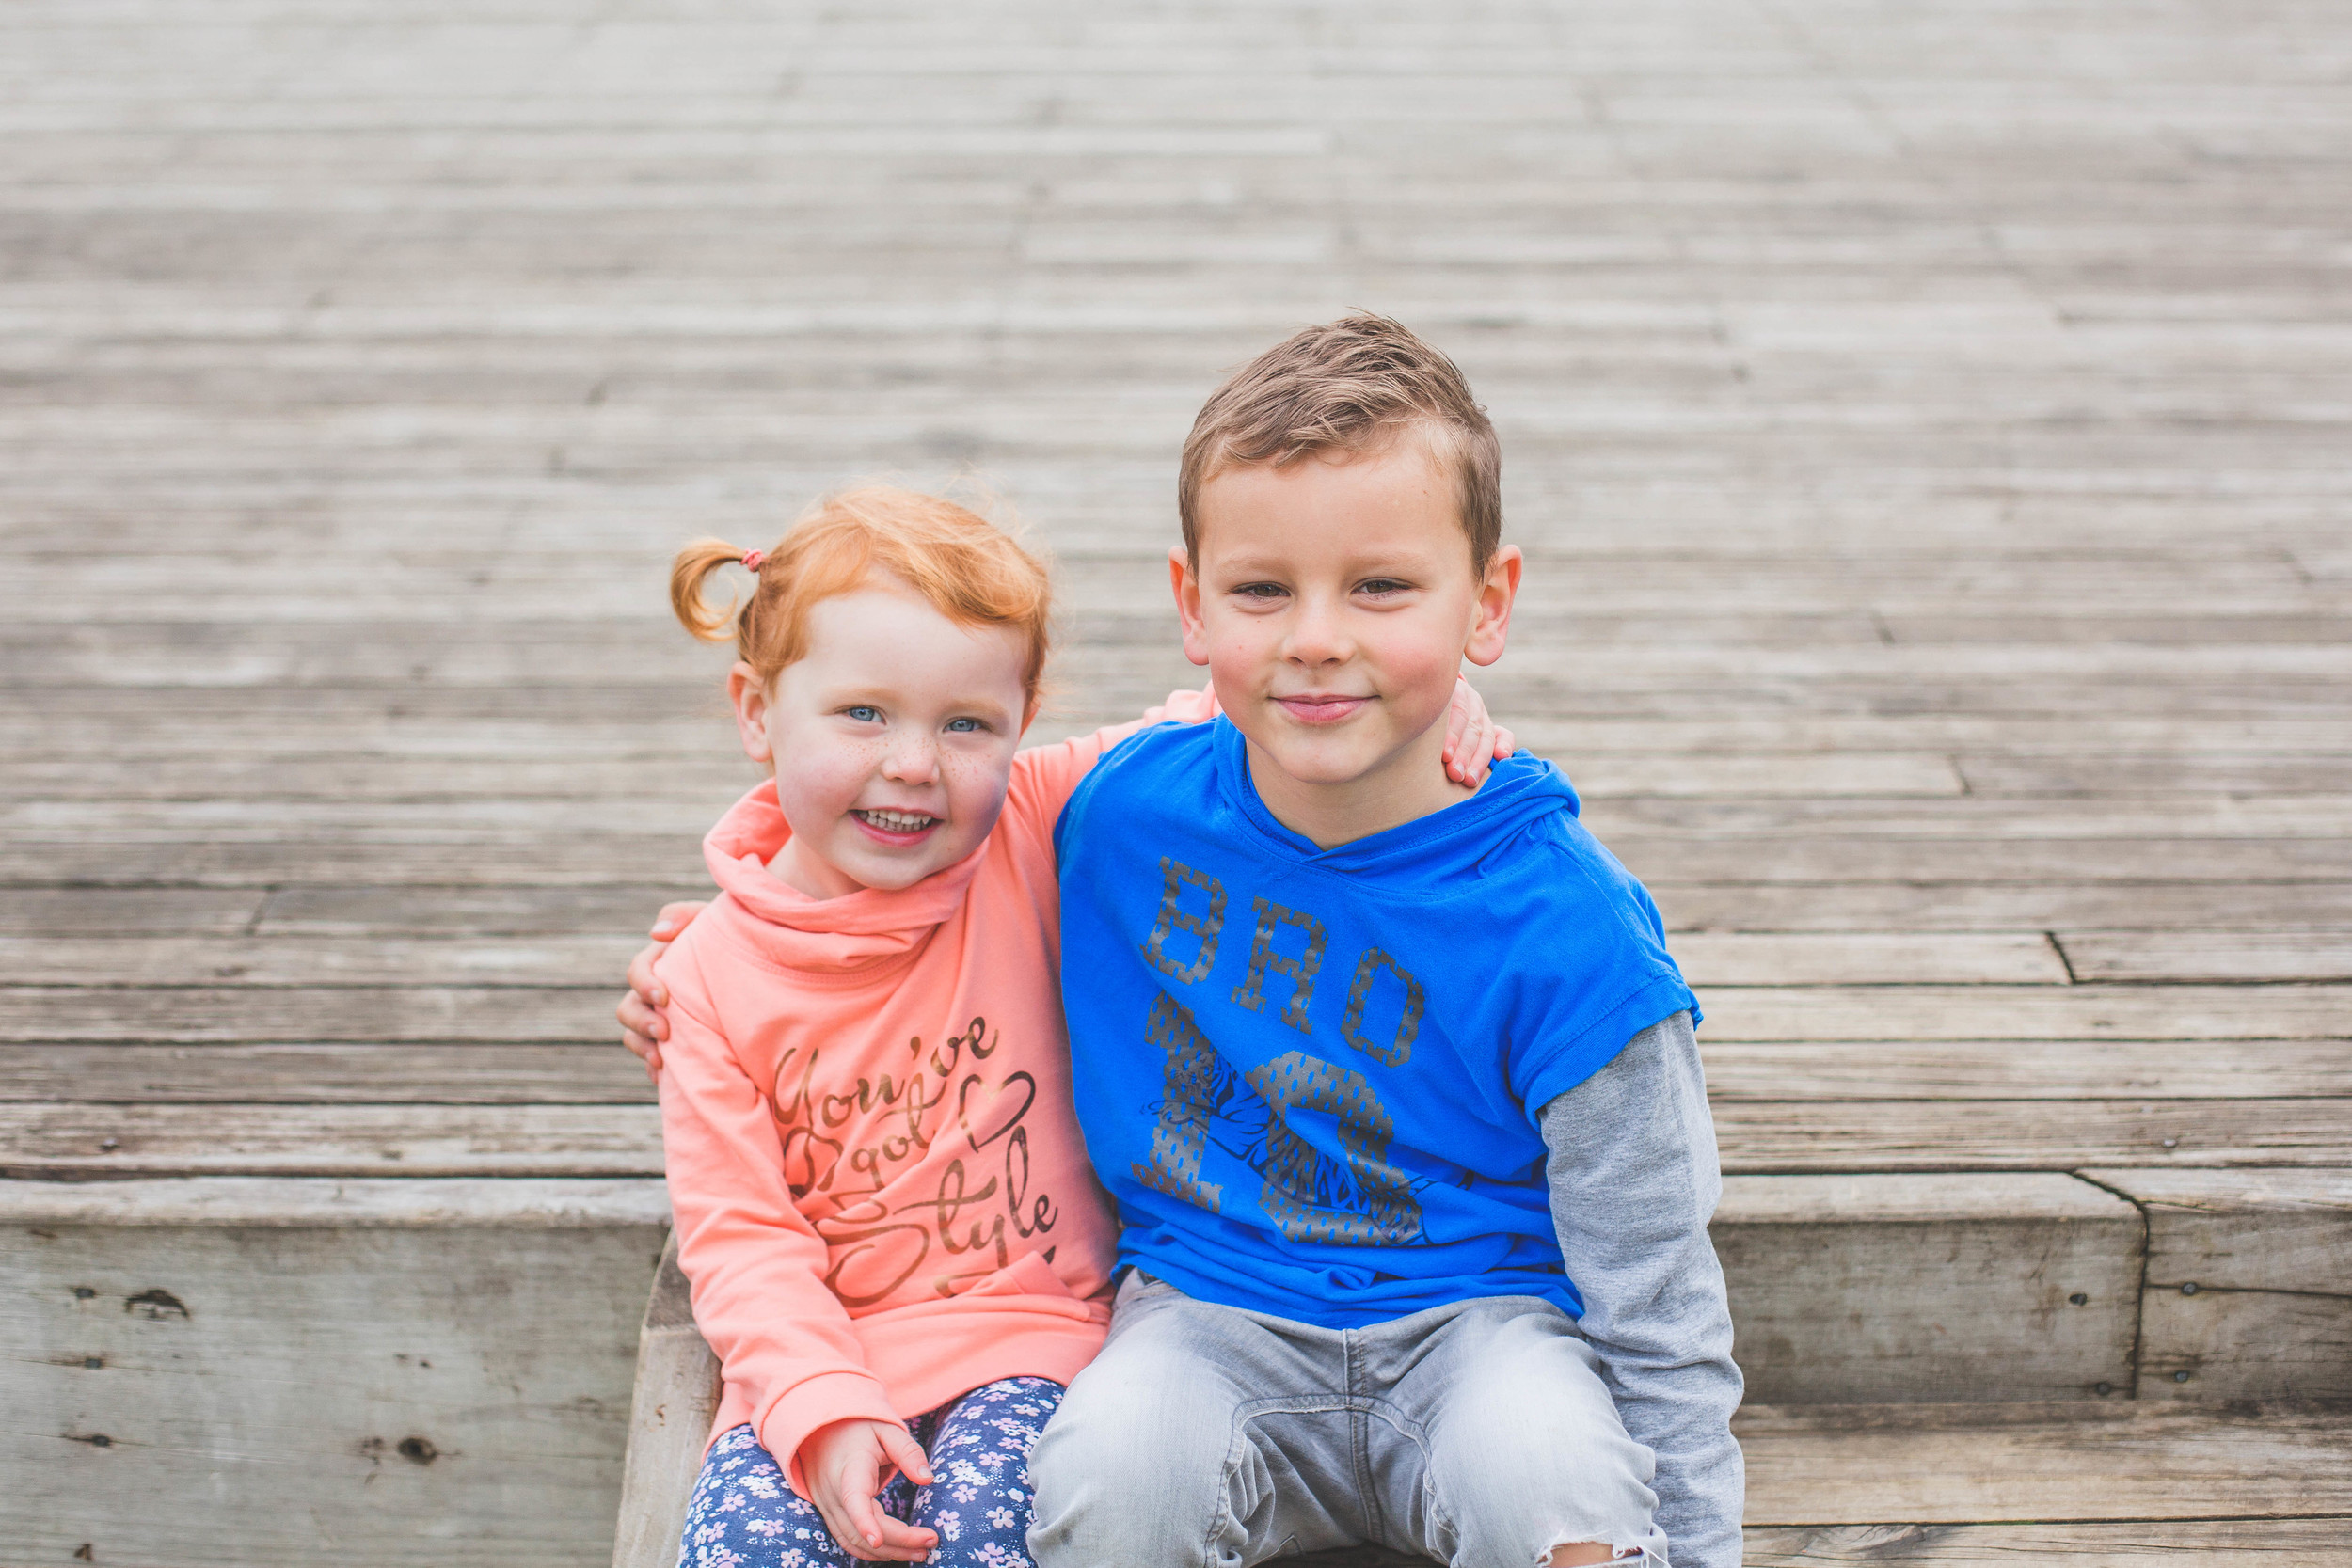 Auckland family photographer 00019.jpg